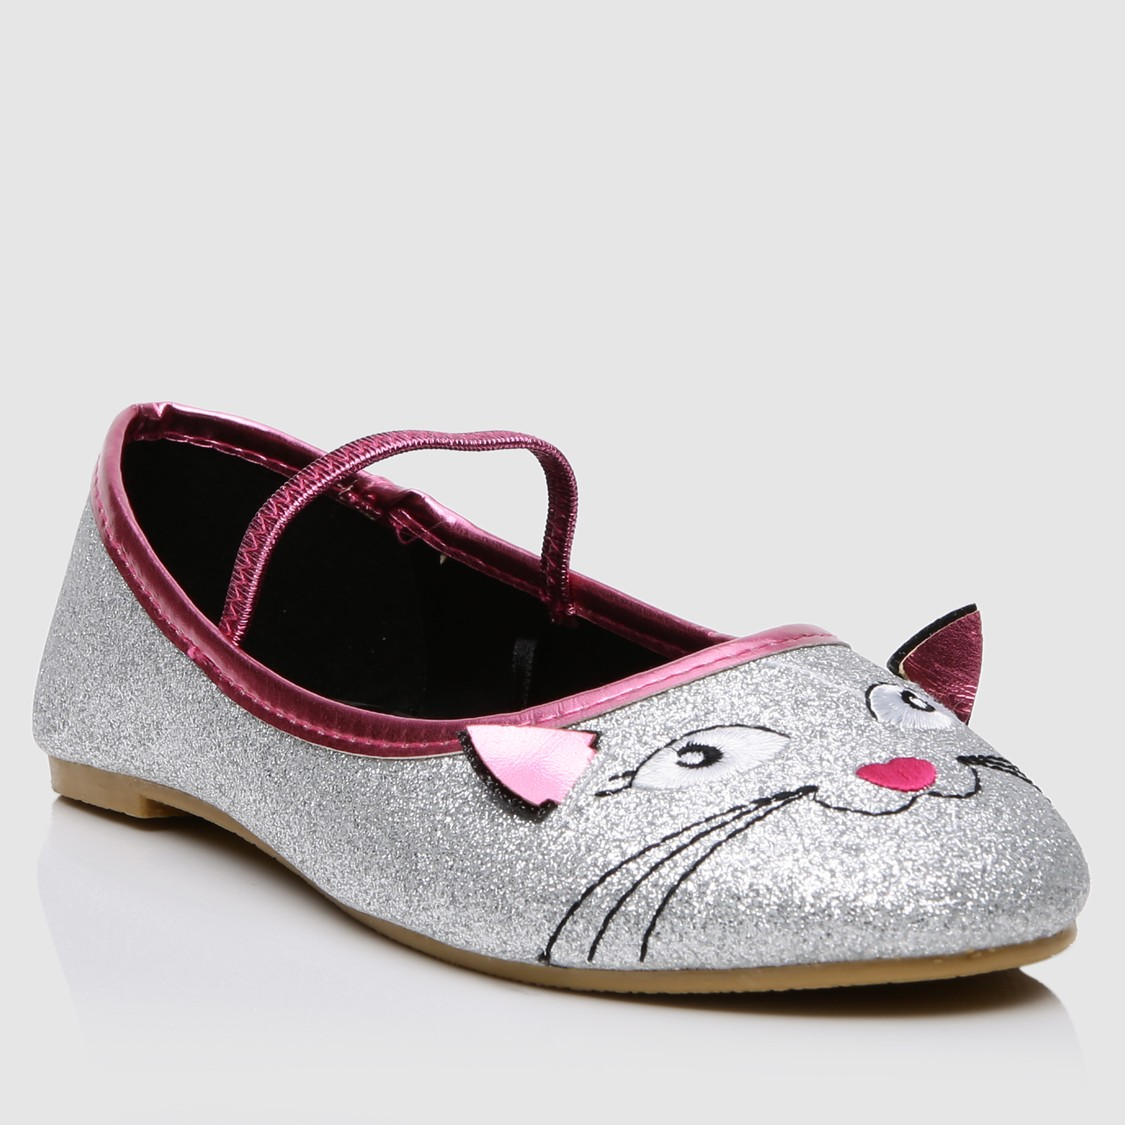 Shimmer Ballerina Shoes with Elasticised Band